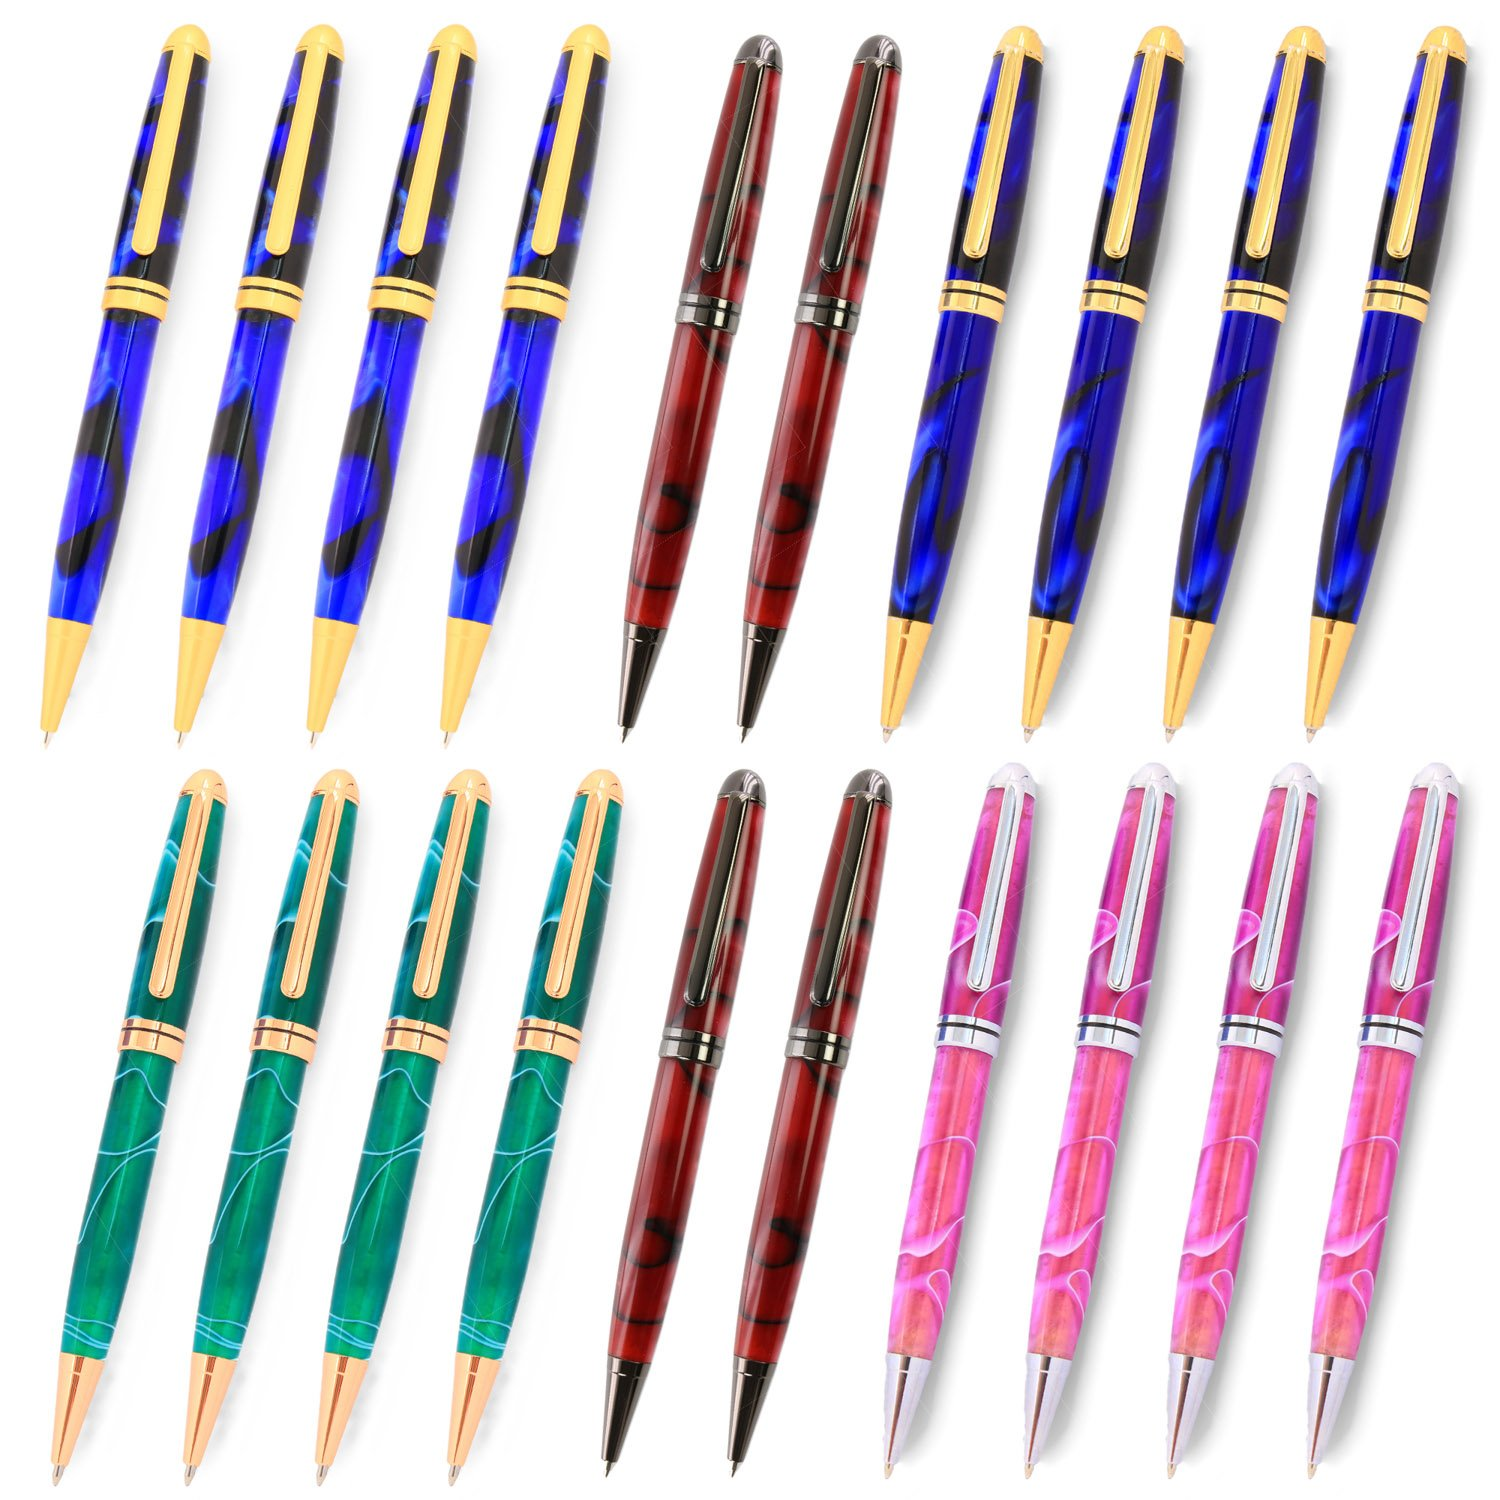 Legacy Woodturning, European Pen Kit, Many Finishes, Multi-Packs by Legacy Woodturning